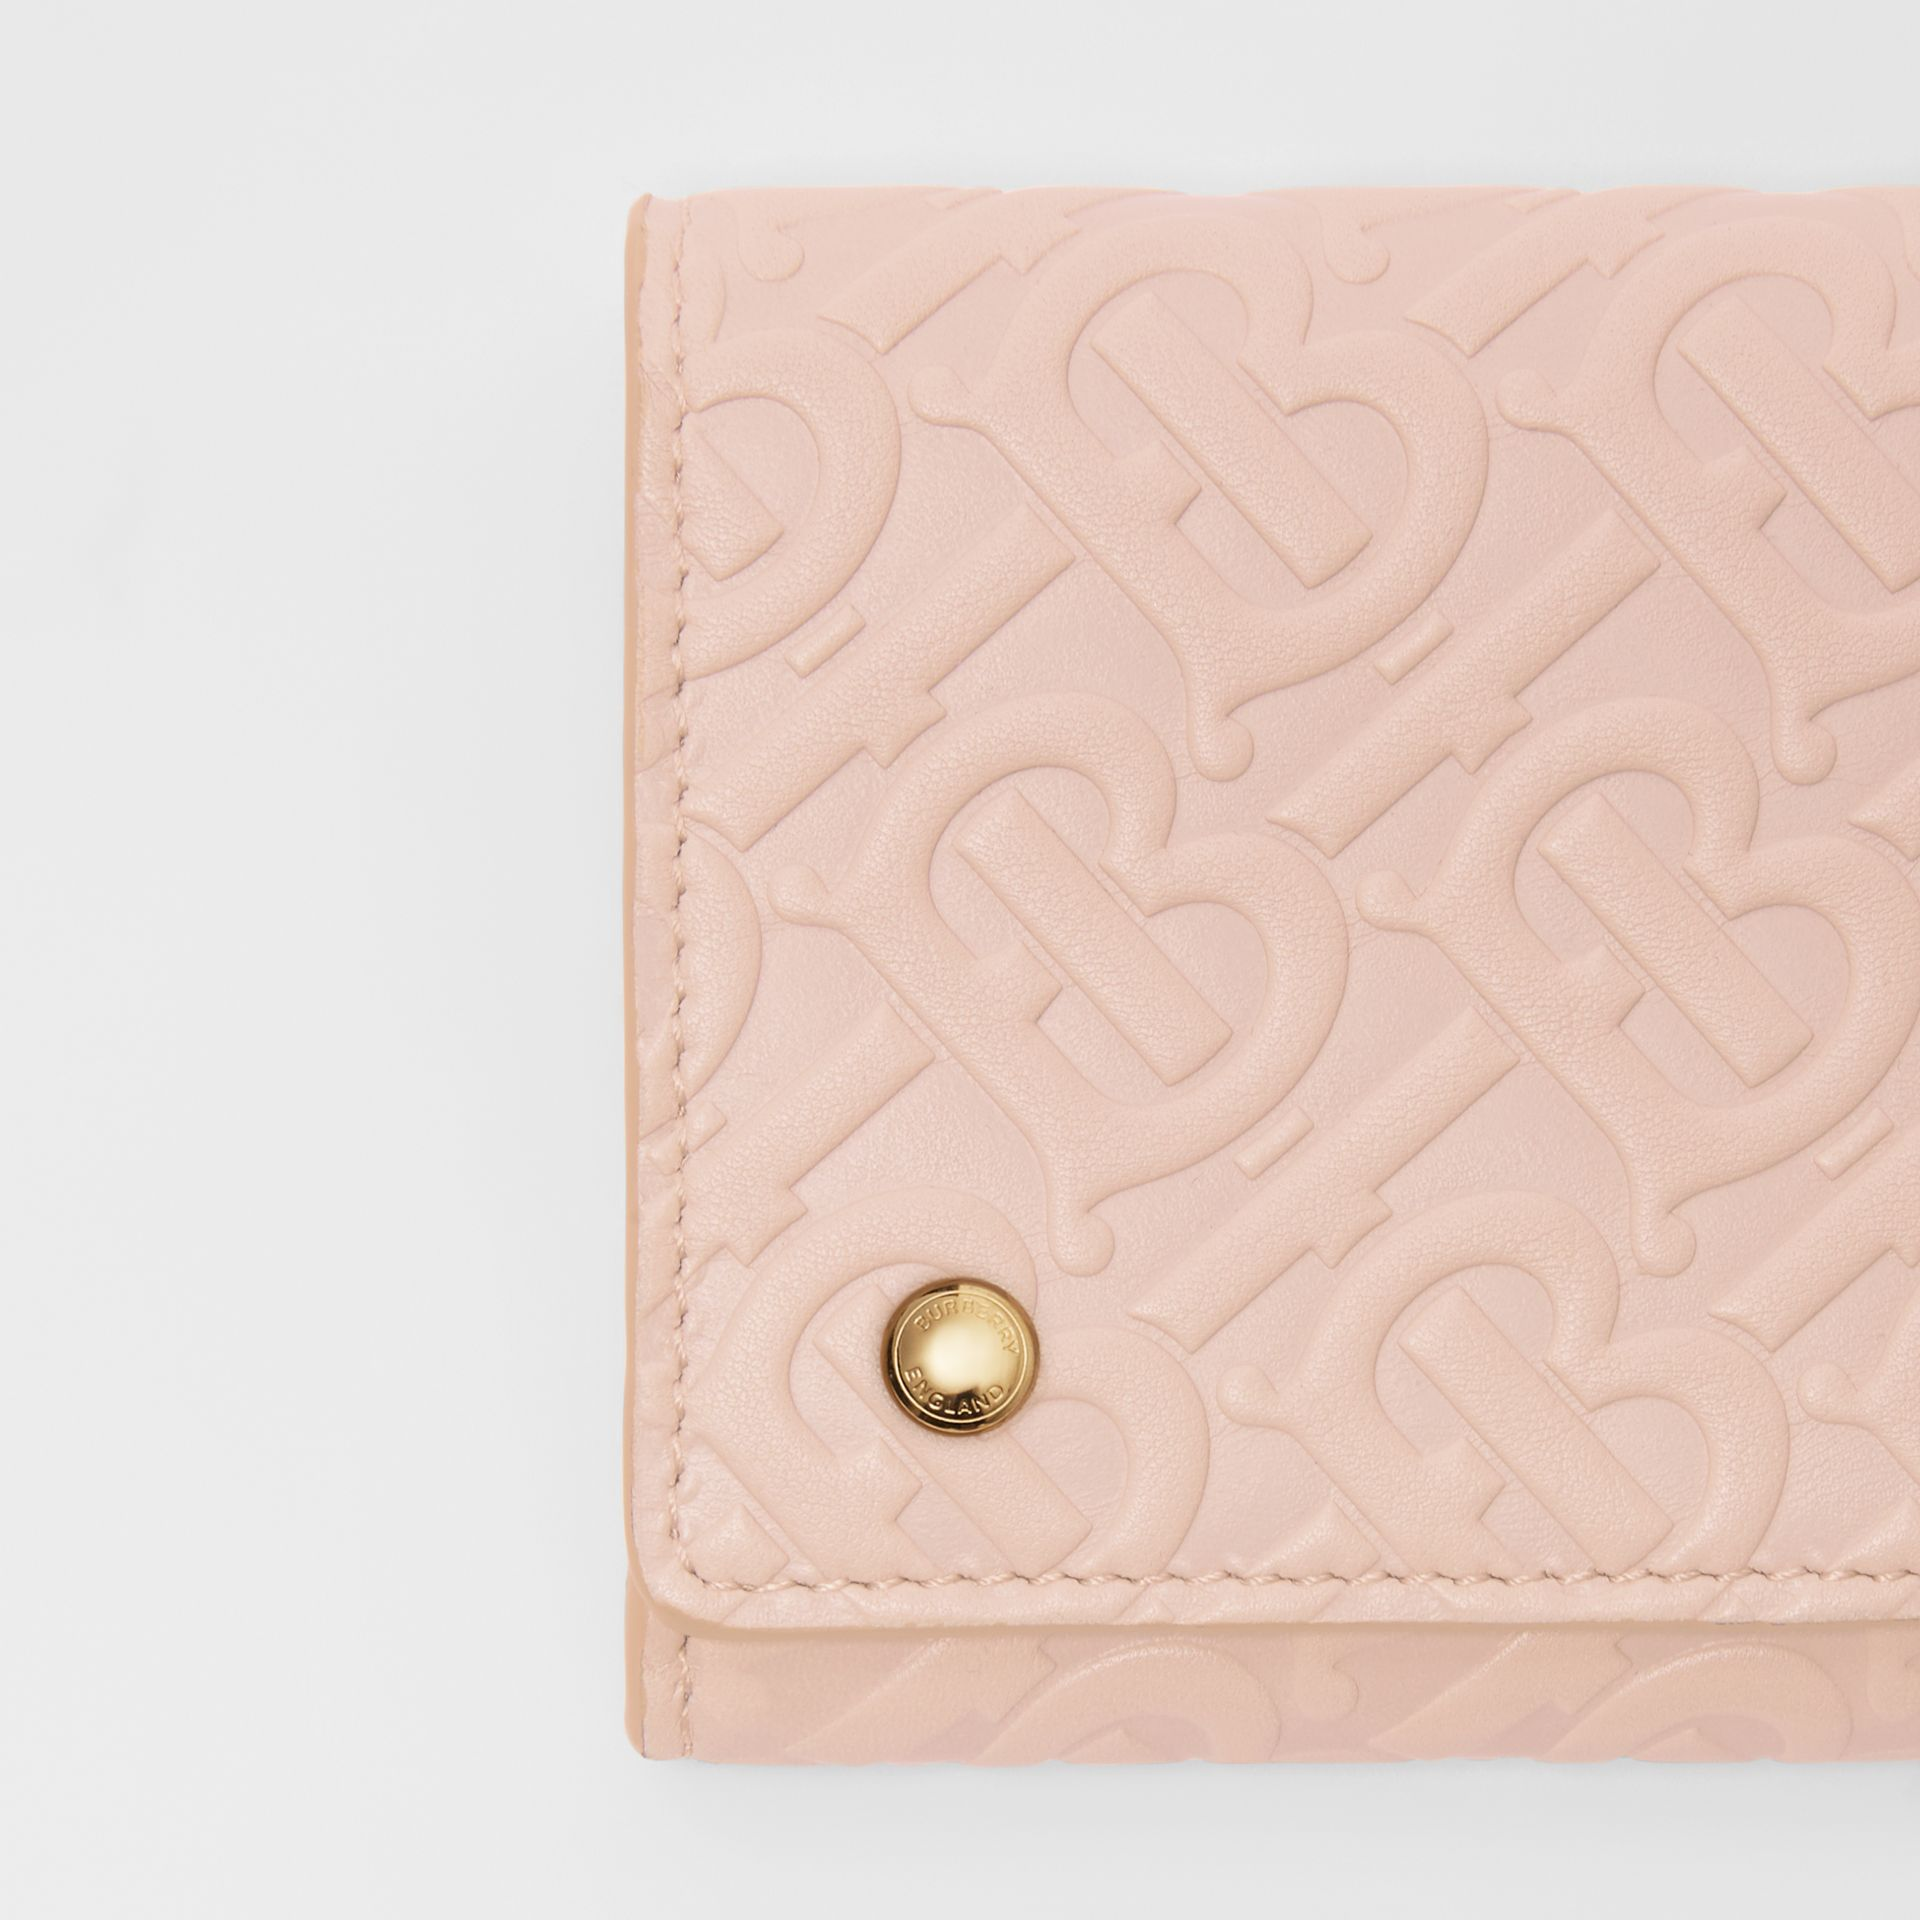 Monogram Leather Continental Wallet in Rose Beige - Women | Burberry United Kingdom - gallery image 1